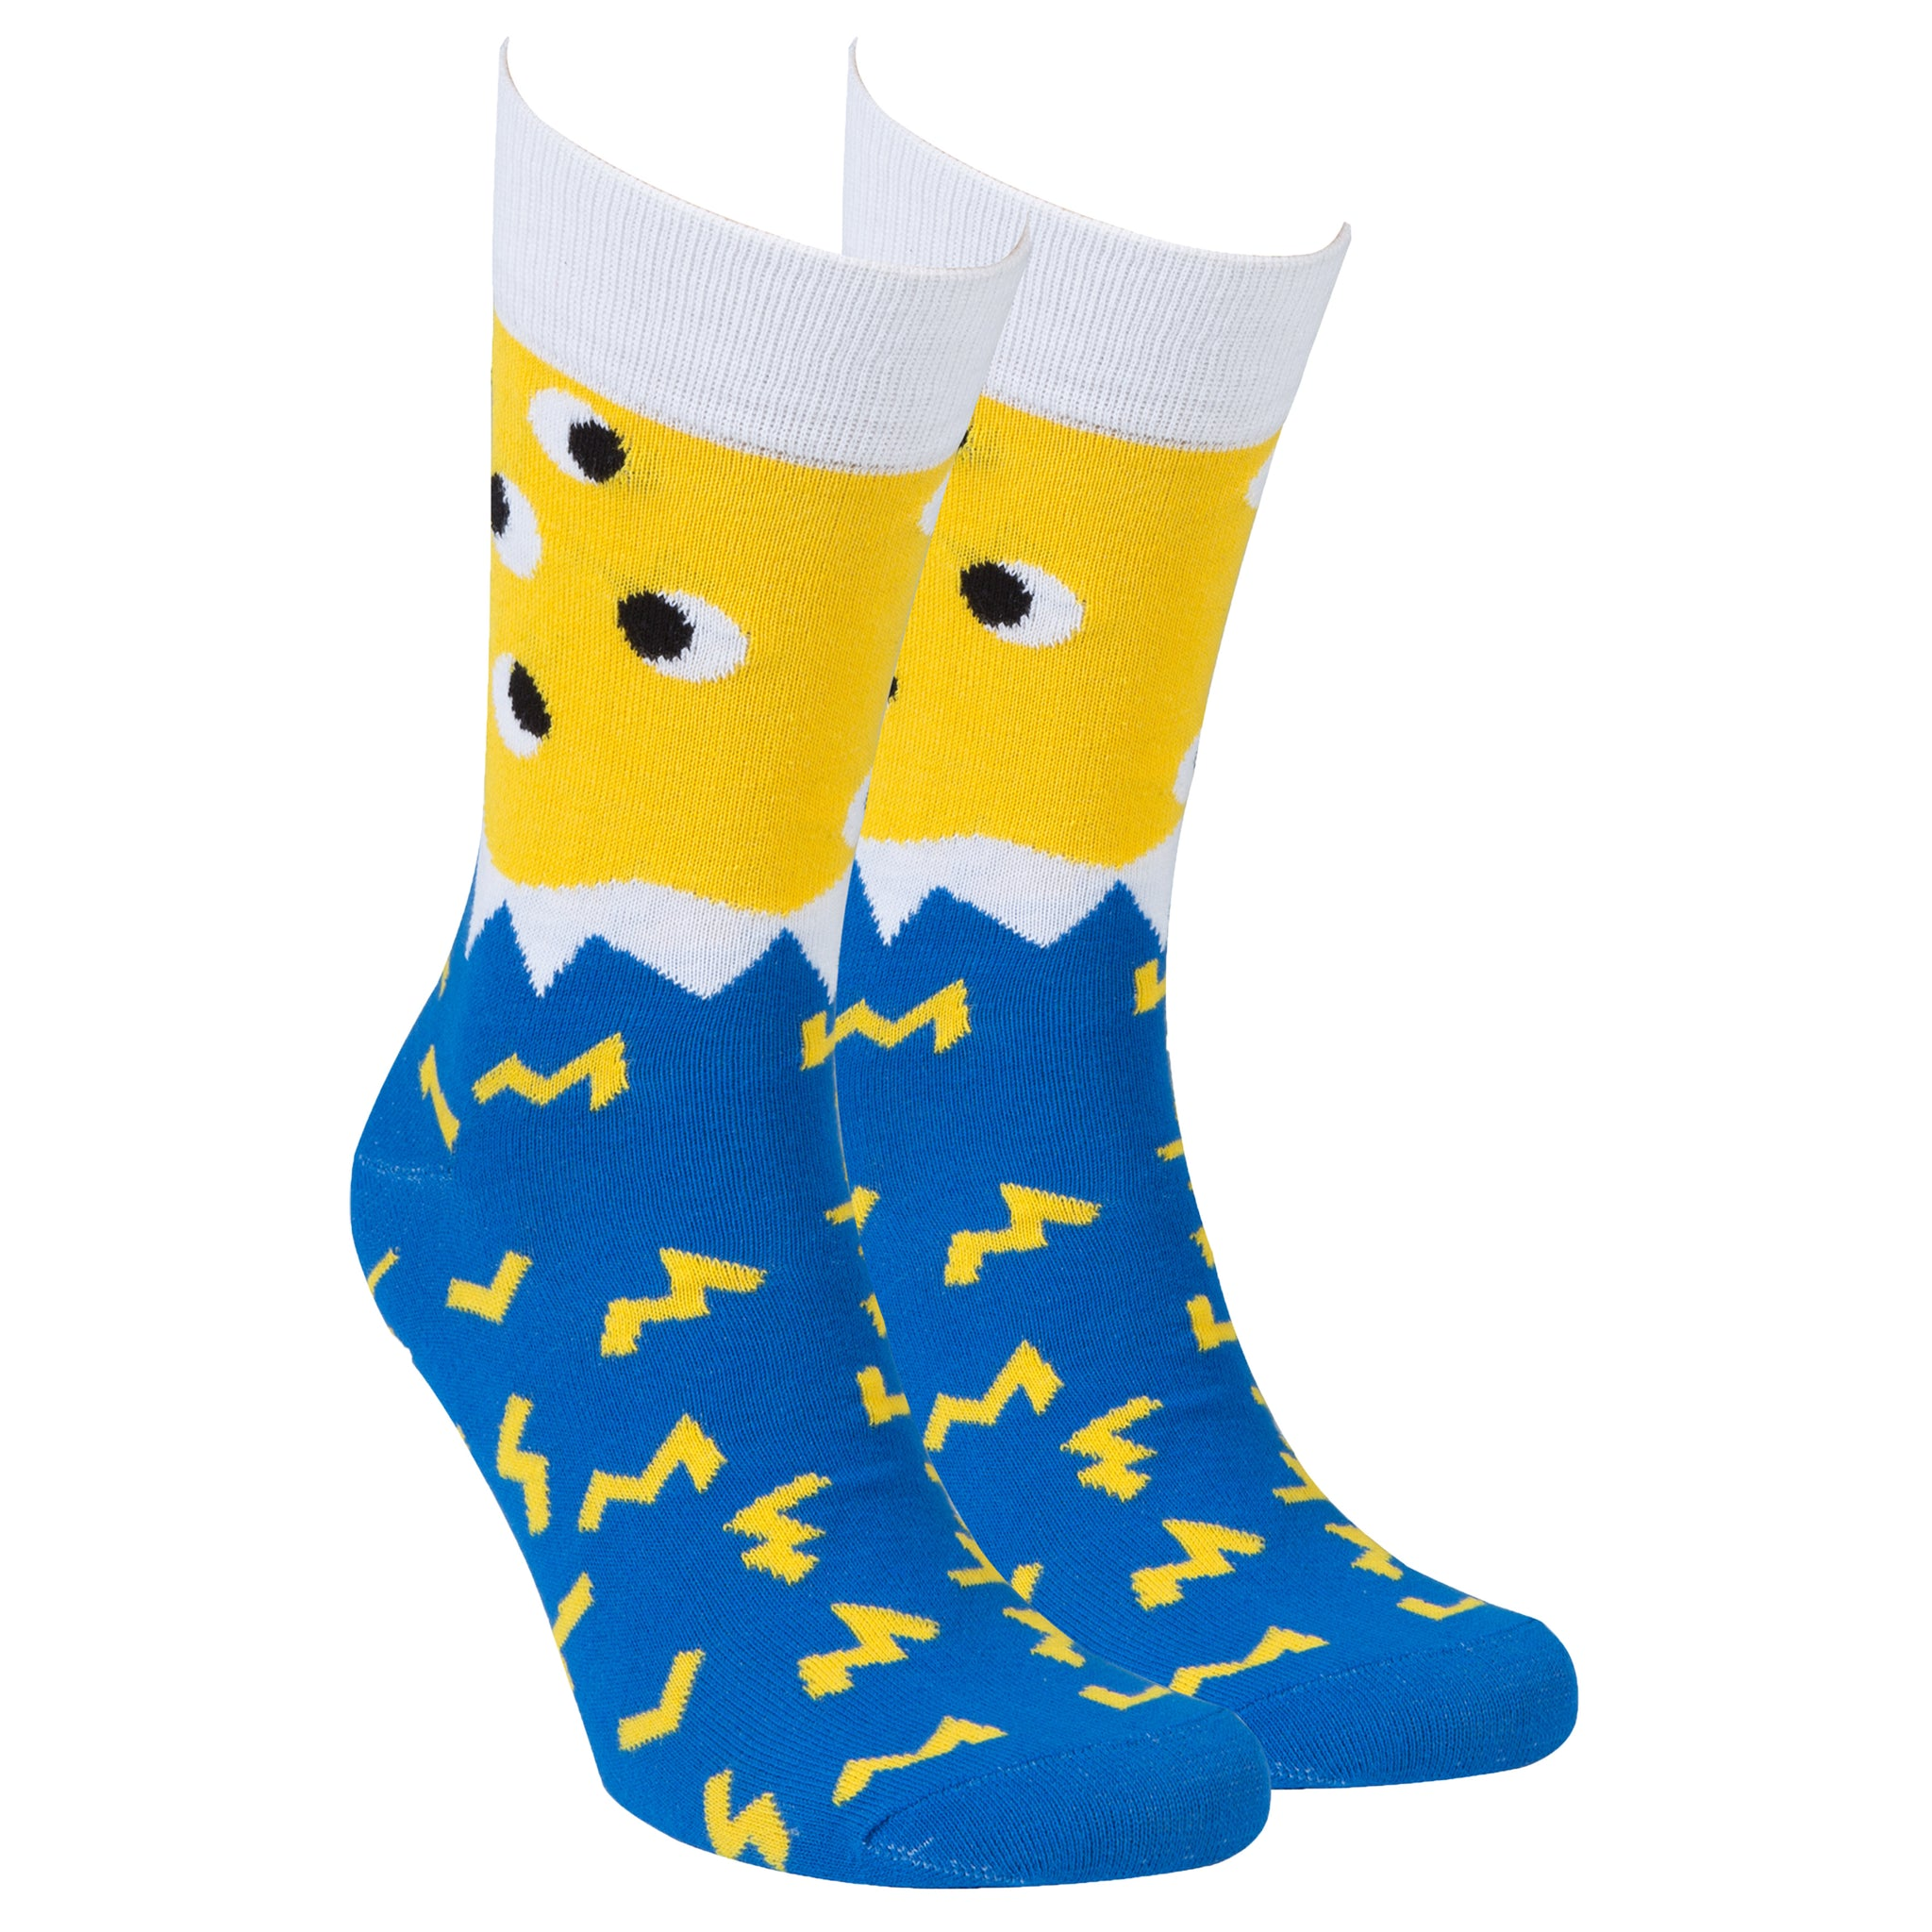 Men's Irregular Eyes Socks